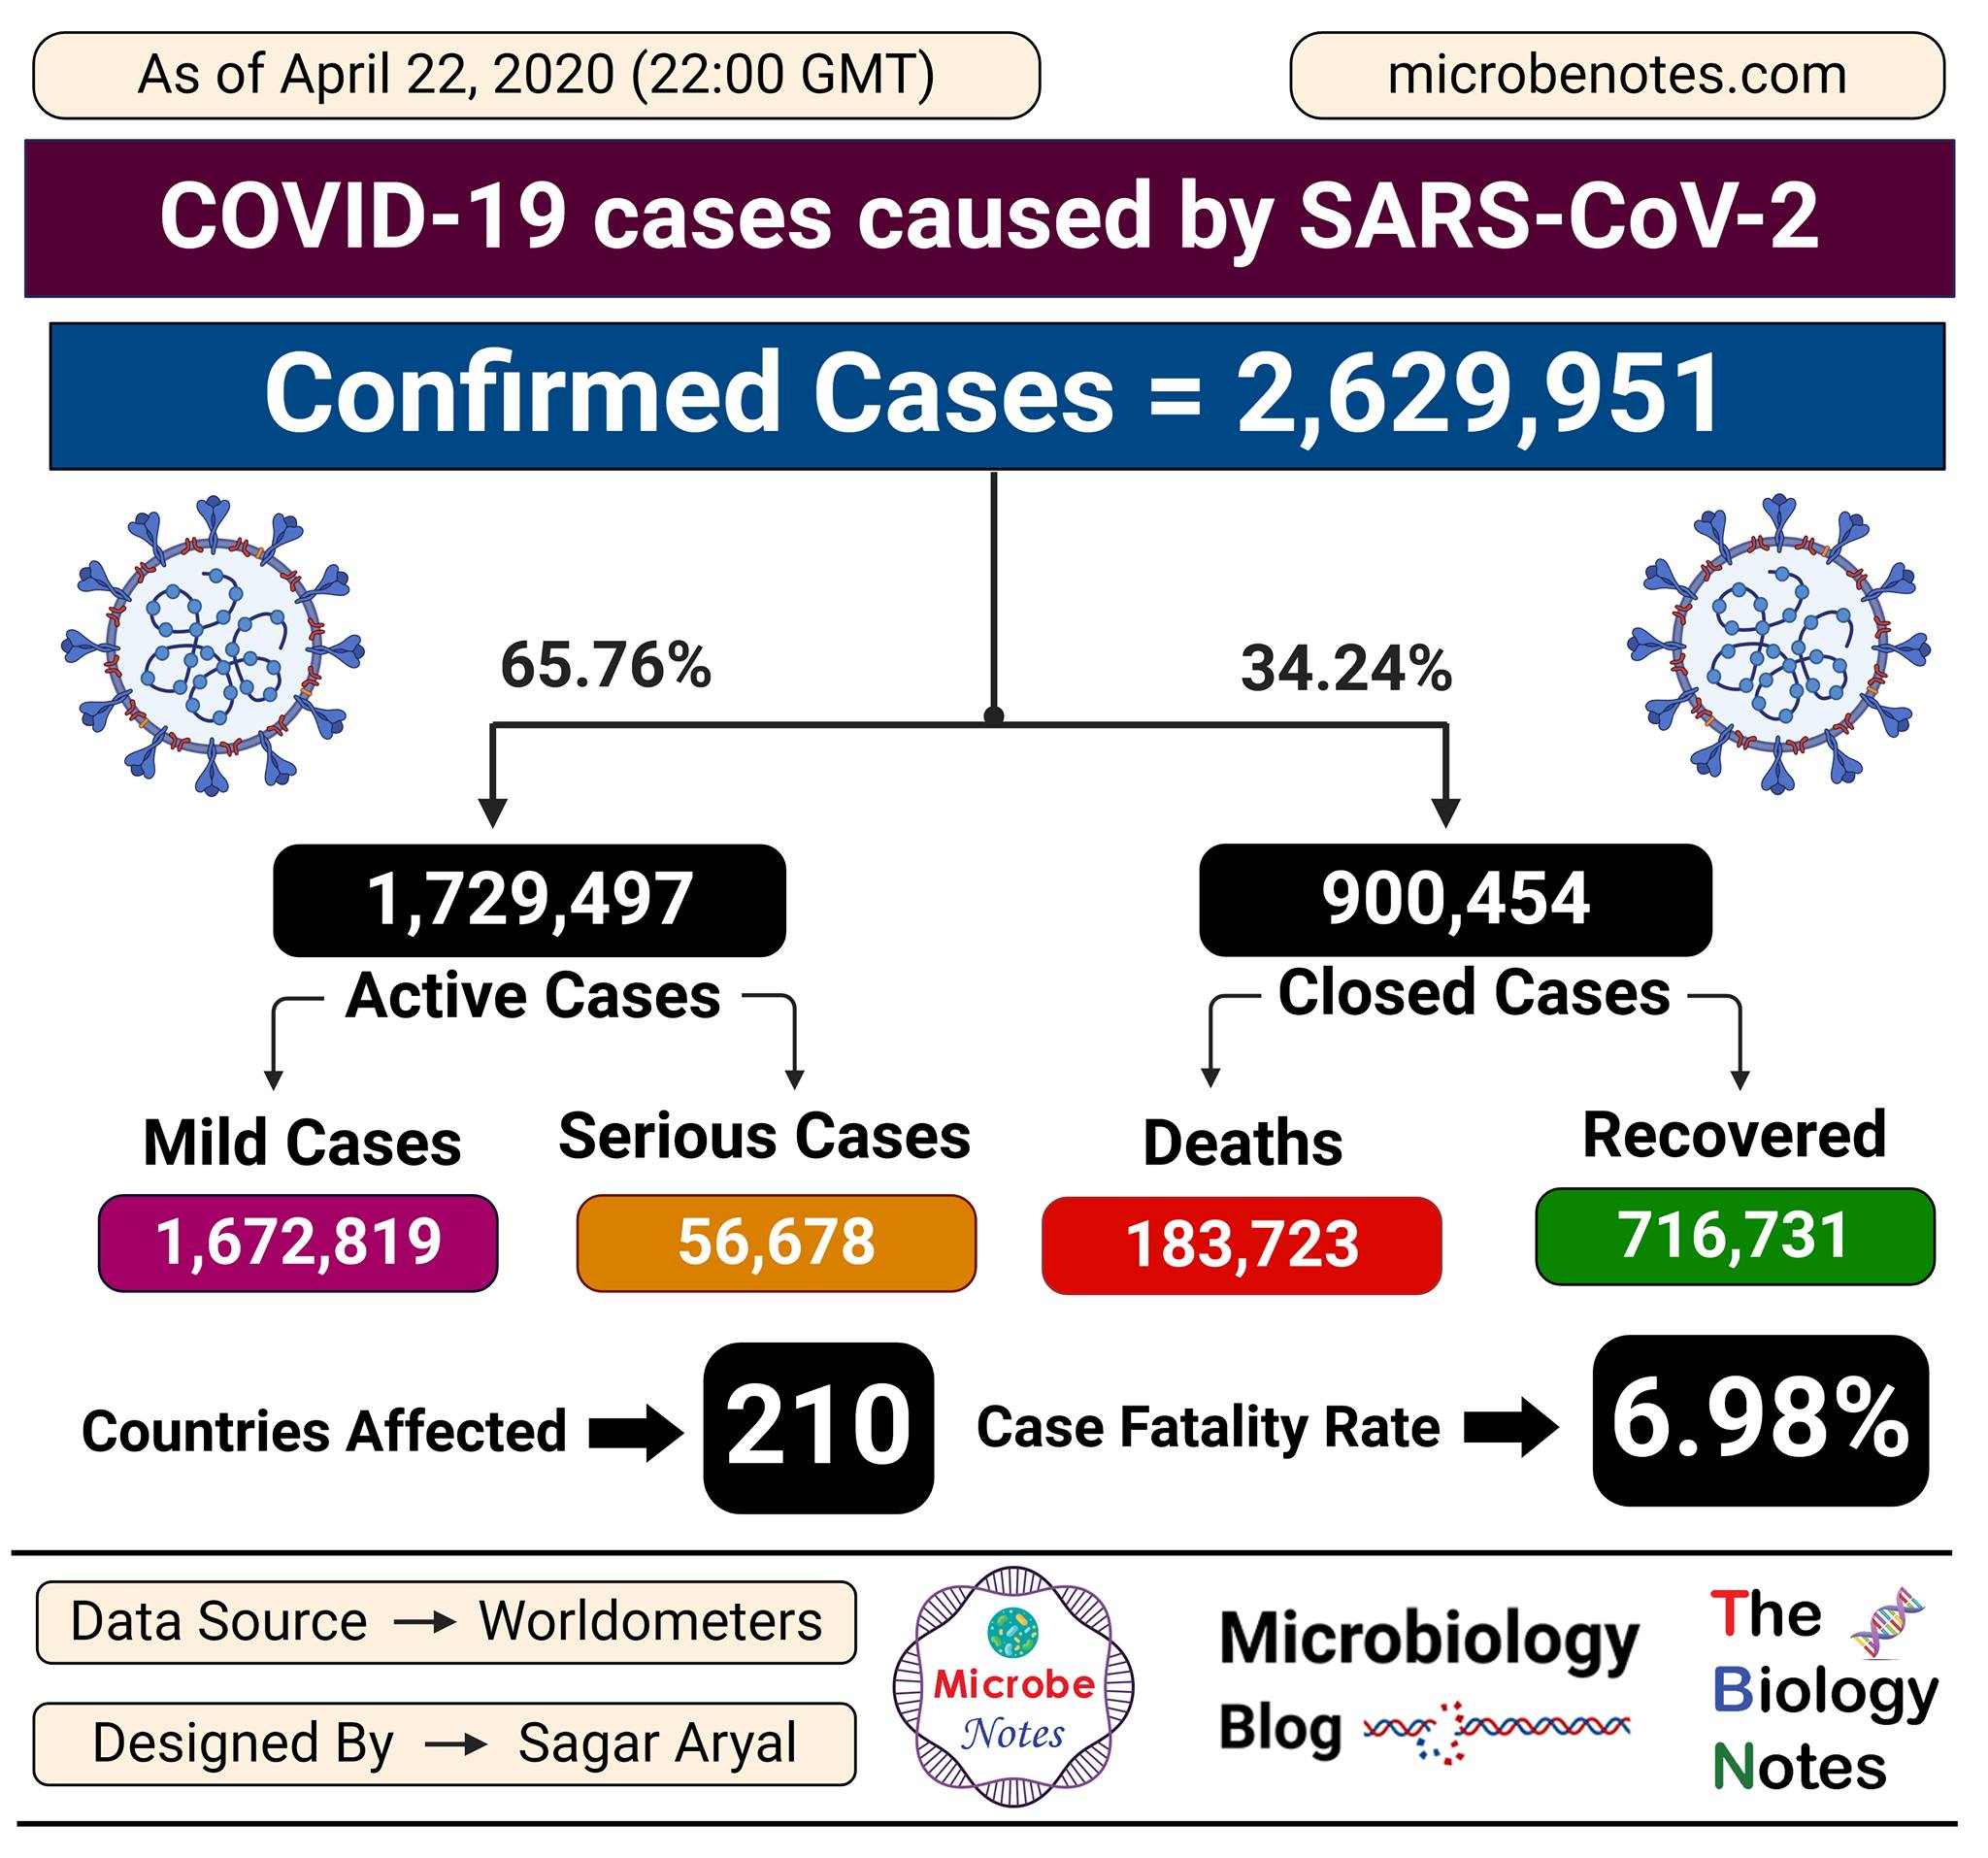 Epidemiology of COVID-19 caused by SARS-CoV-2 as of April 22, 2020